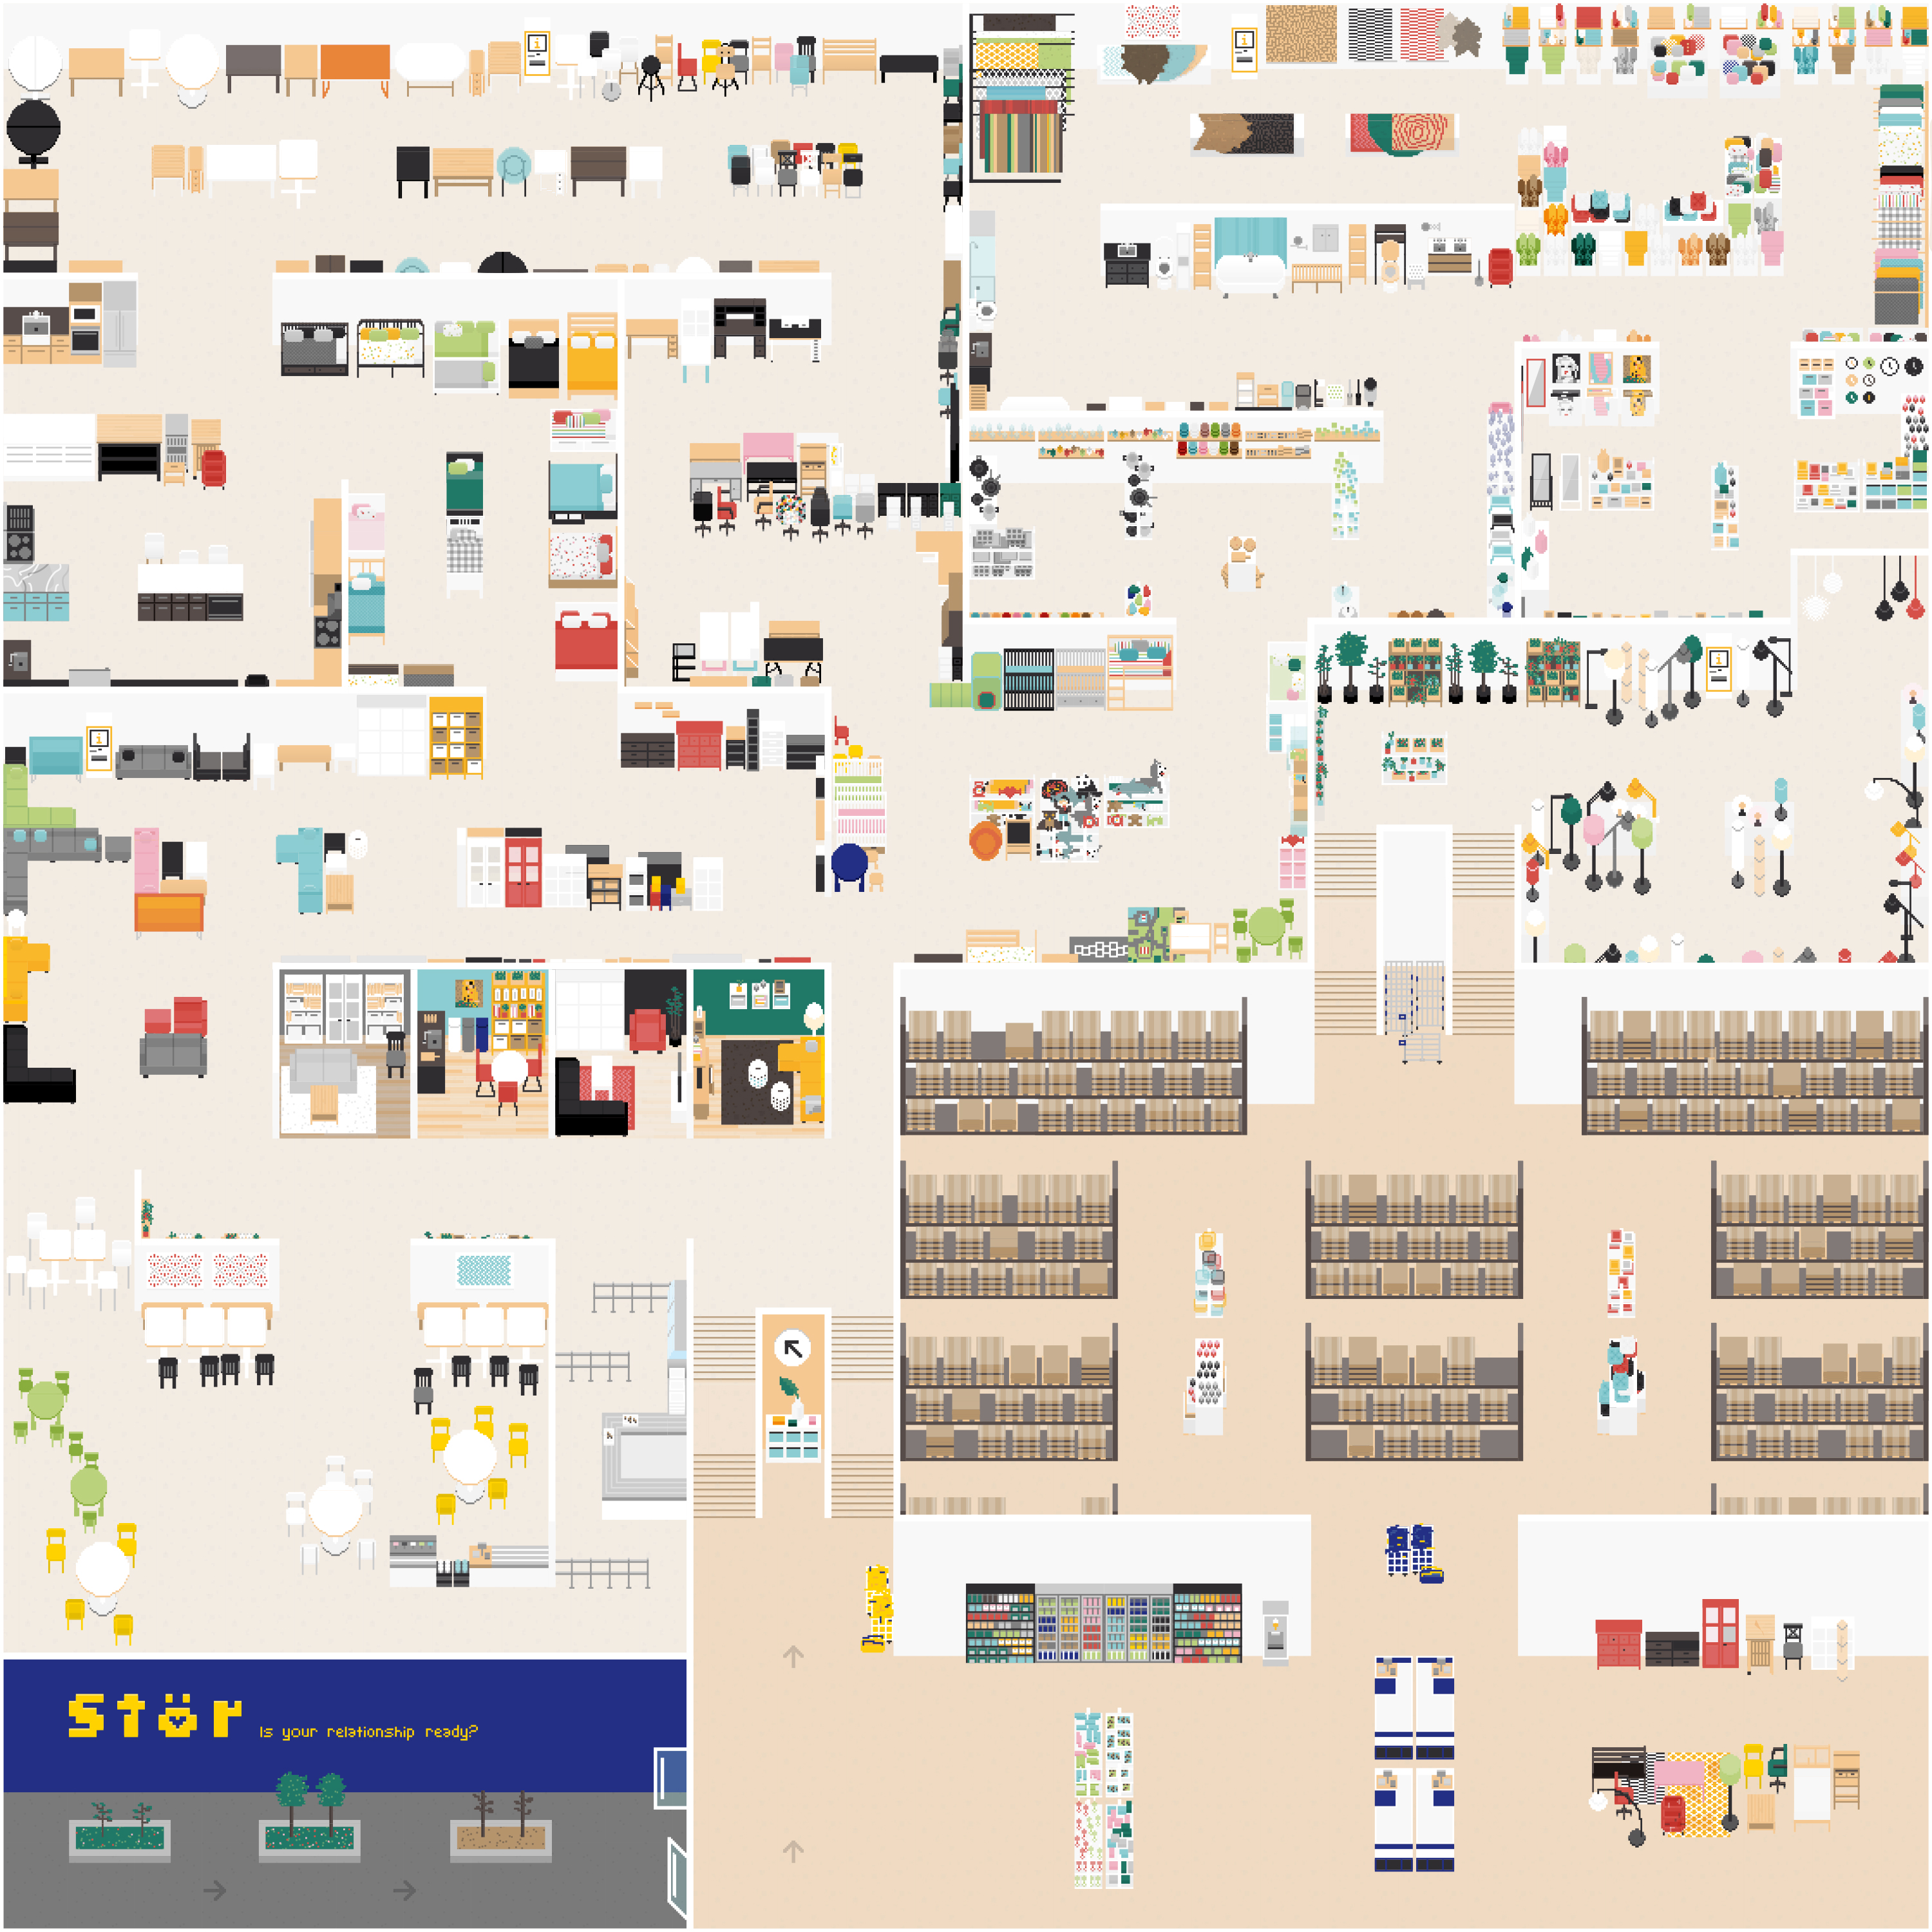 An overhead view of a pixelated IKEA store